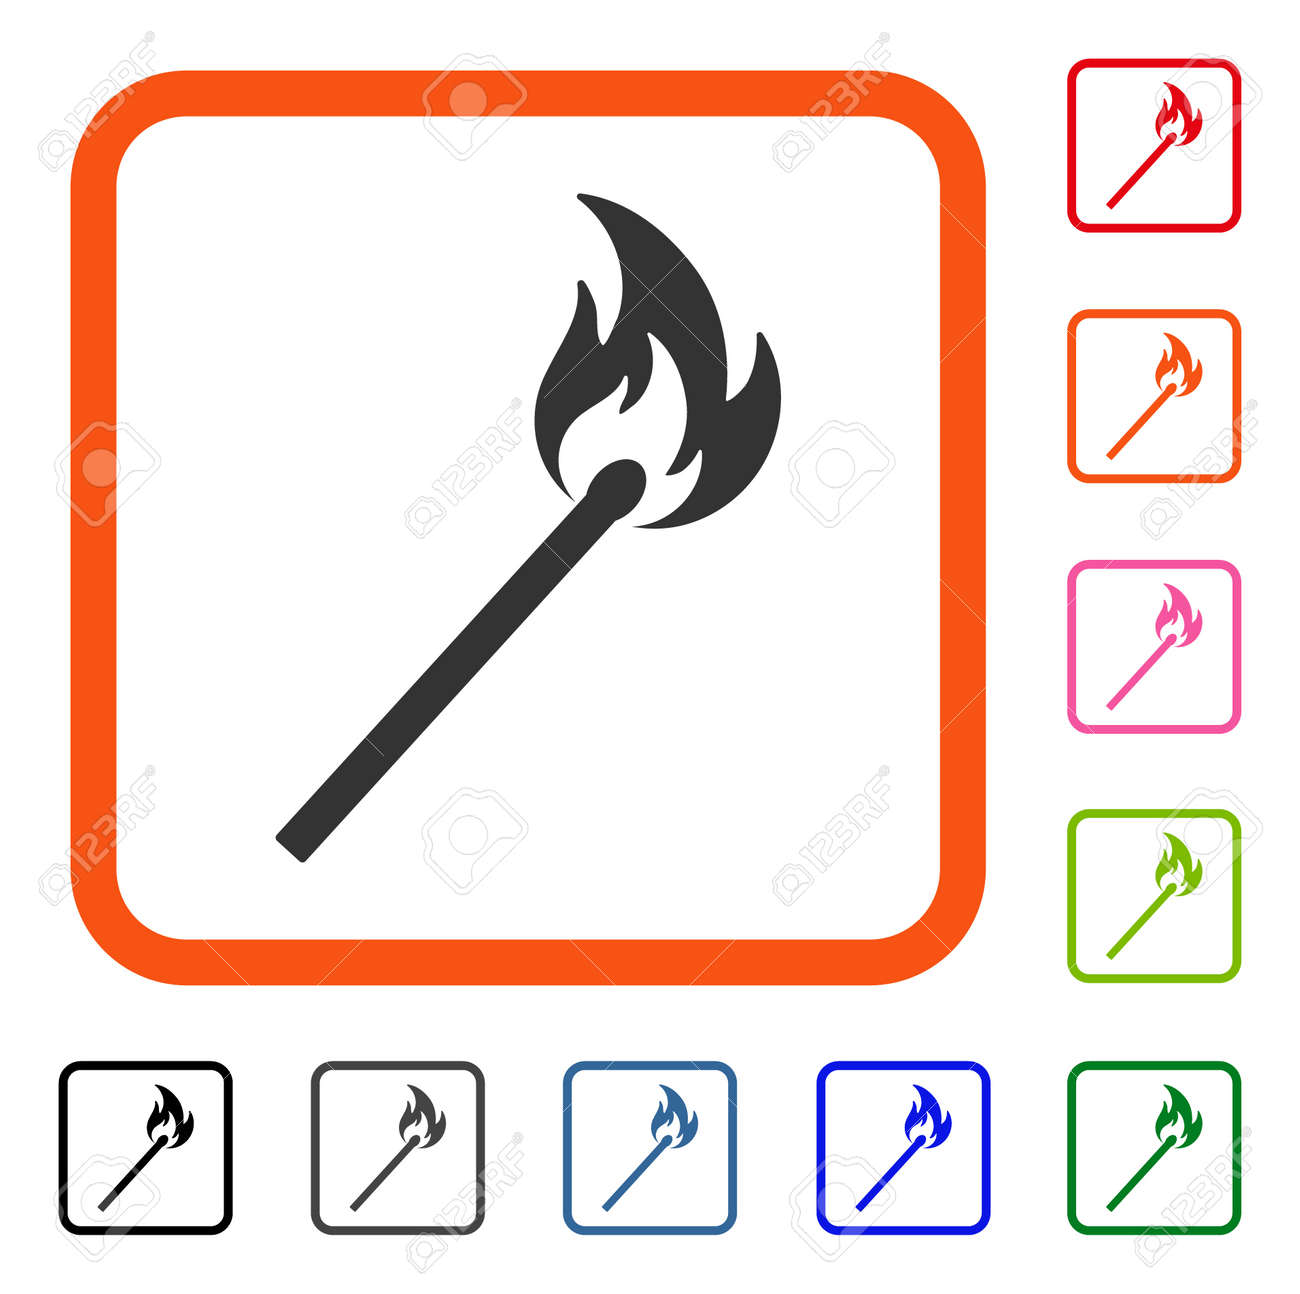 Match Fire Icon Flat Grey Iconic Symbol In An Orange Rounded